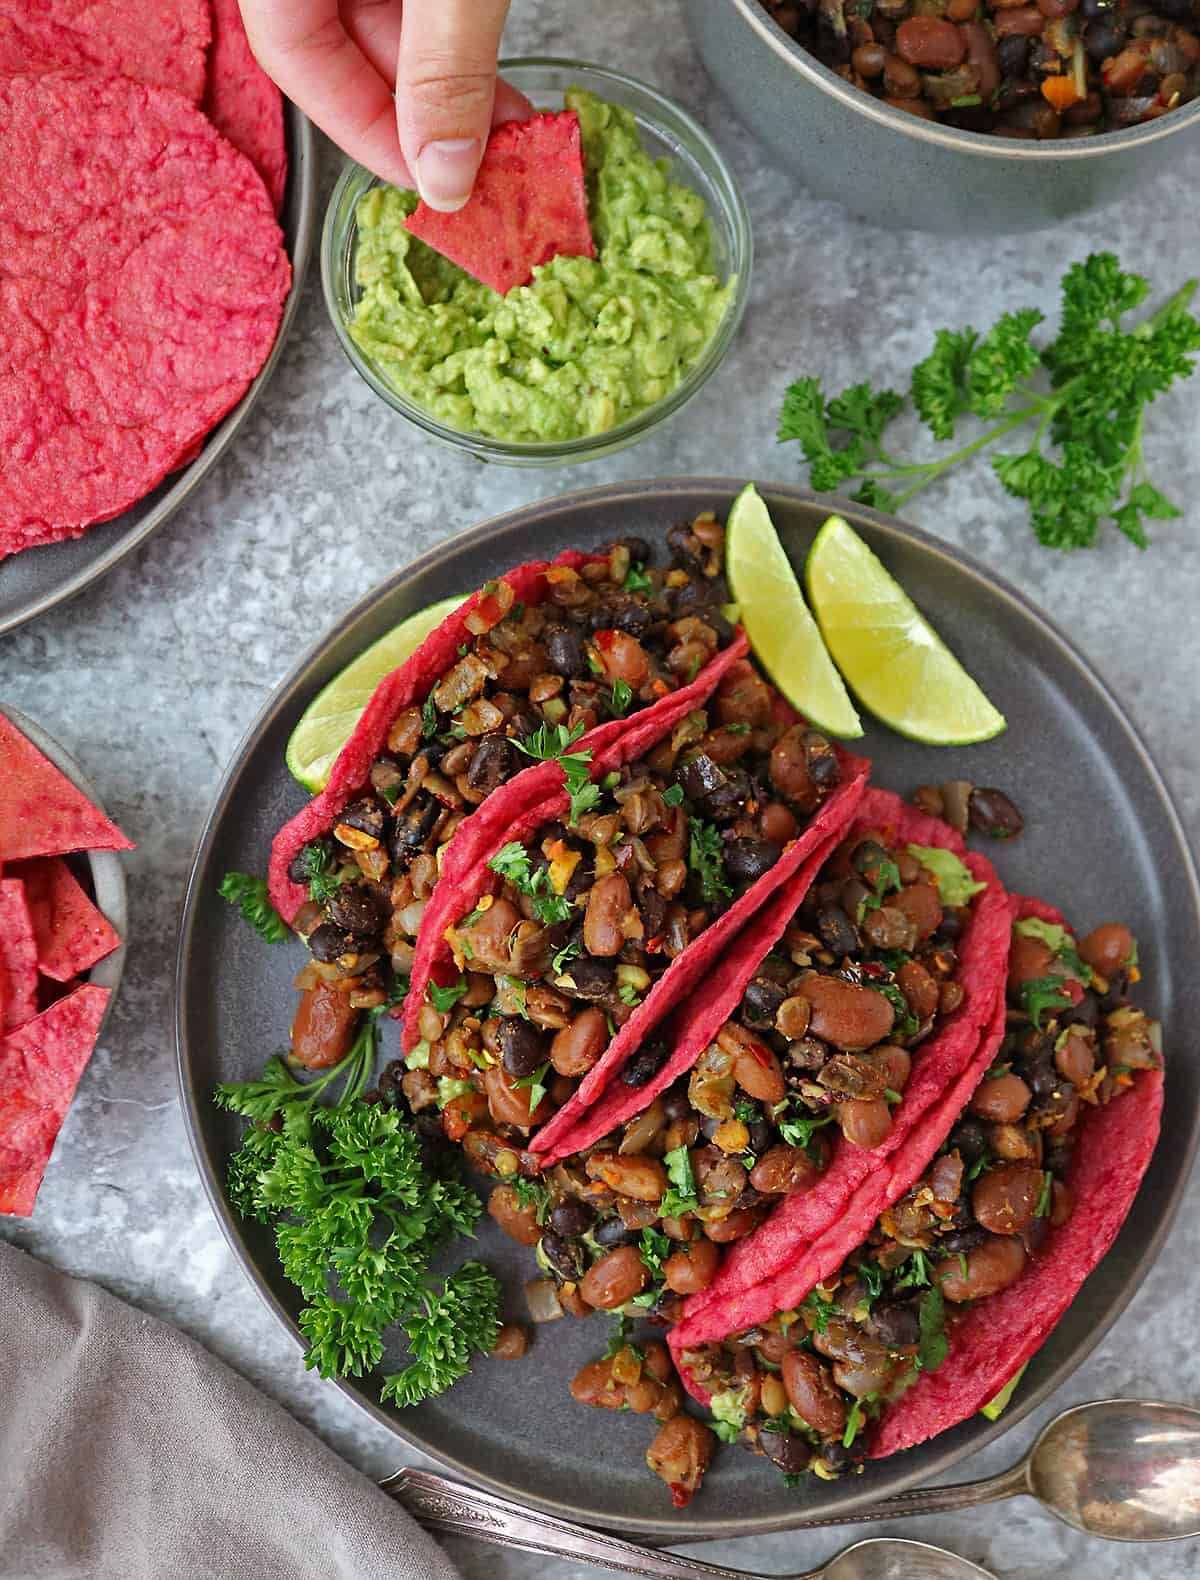 Beetroot Tortillas With Bean Filling For Dinner